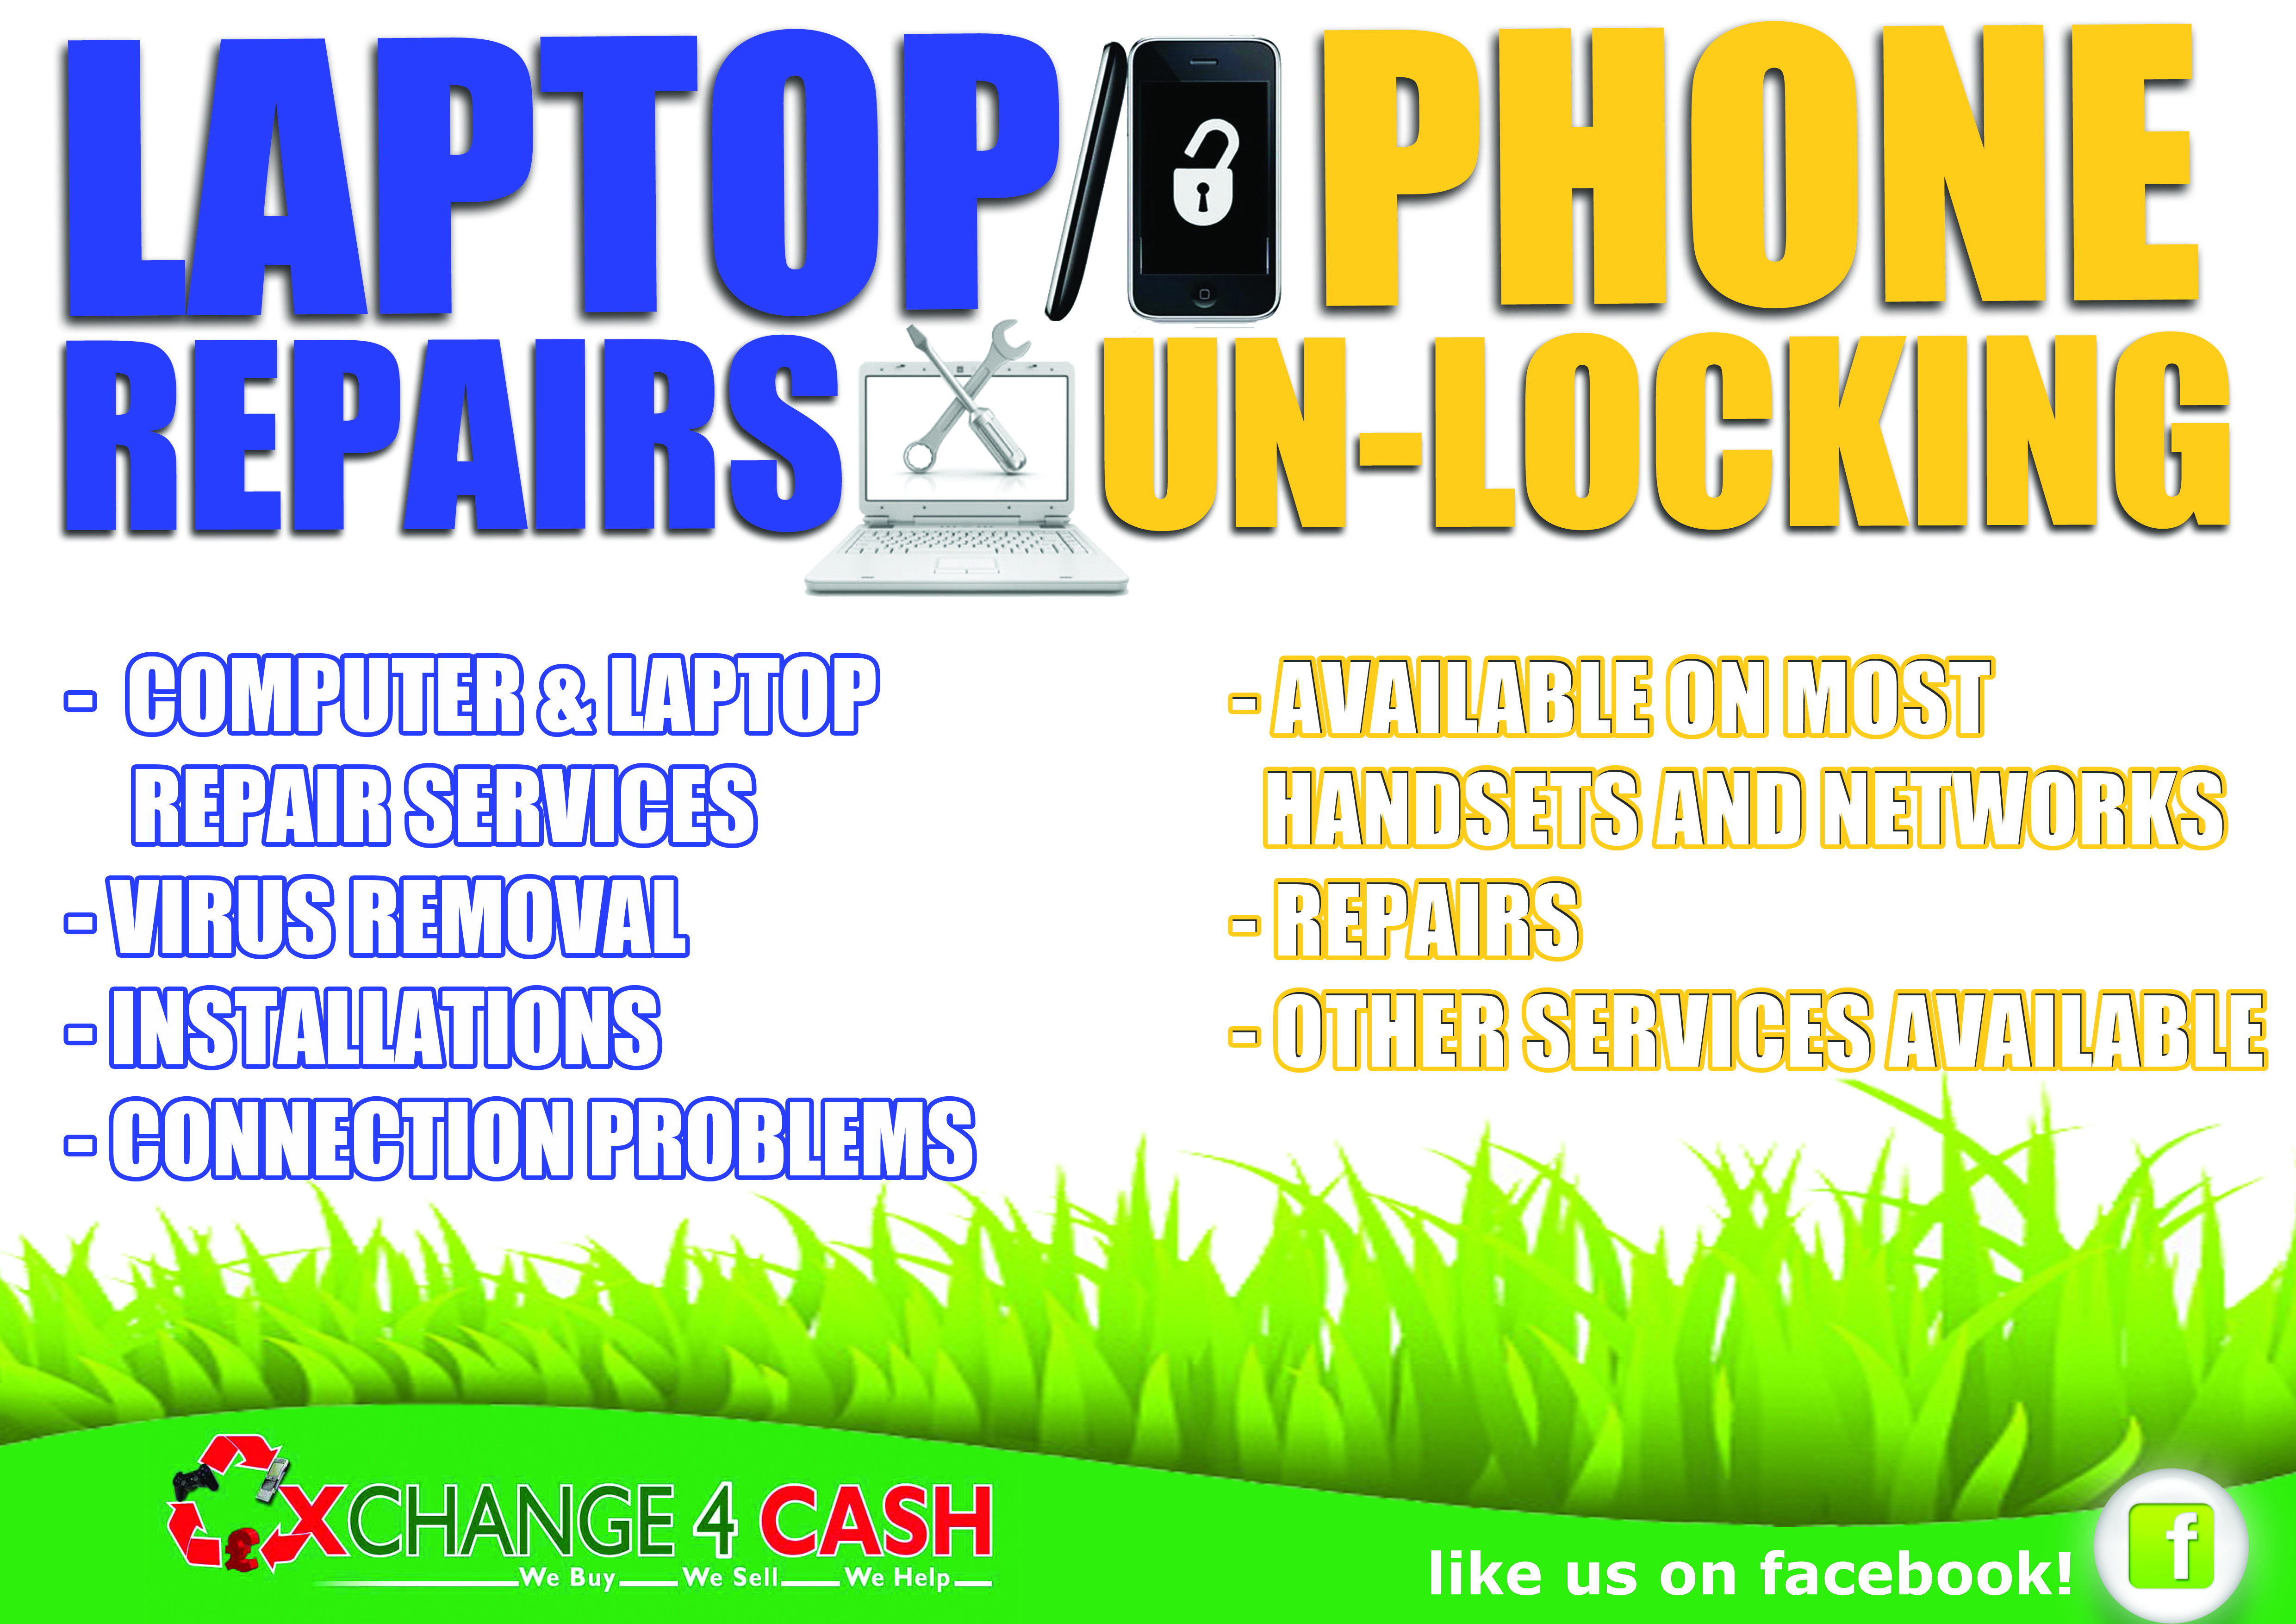 We also do Laptop and Phone repairs, so designed a poster to show this